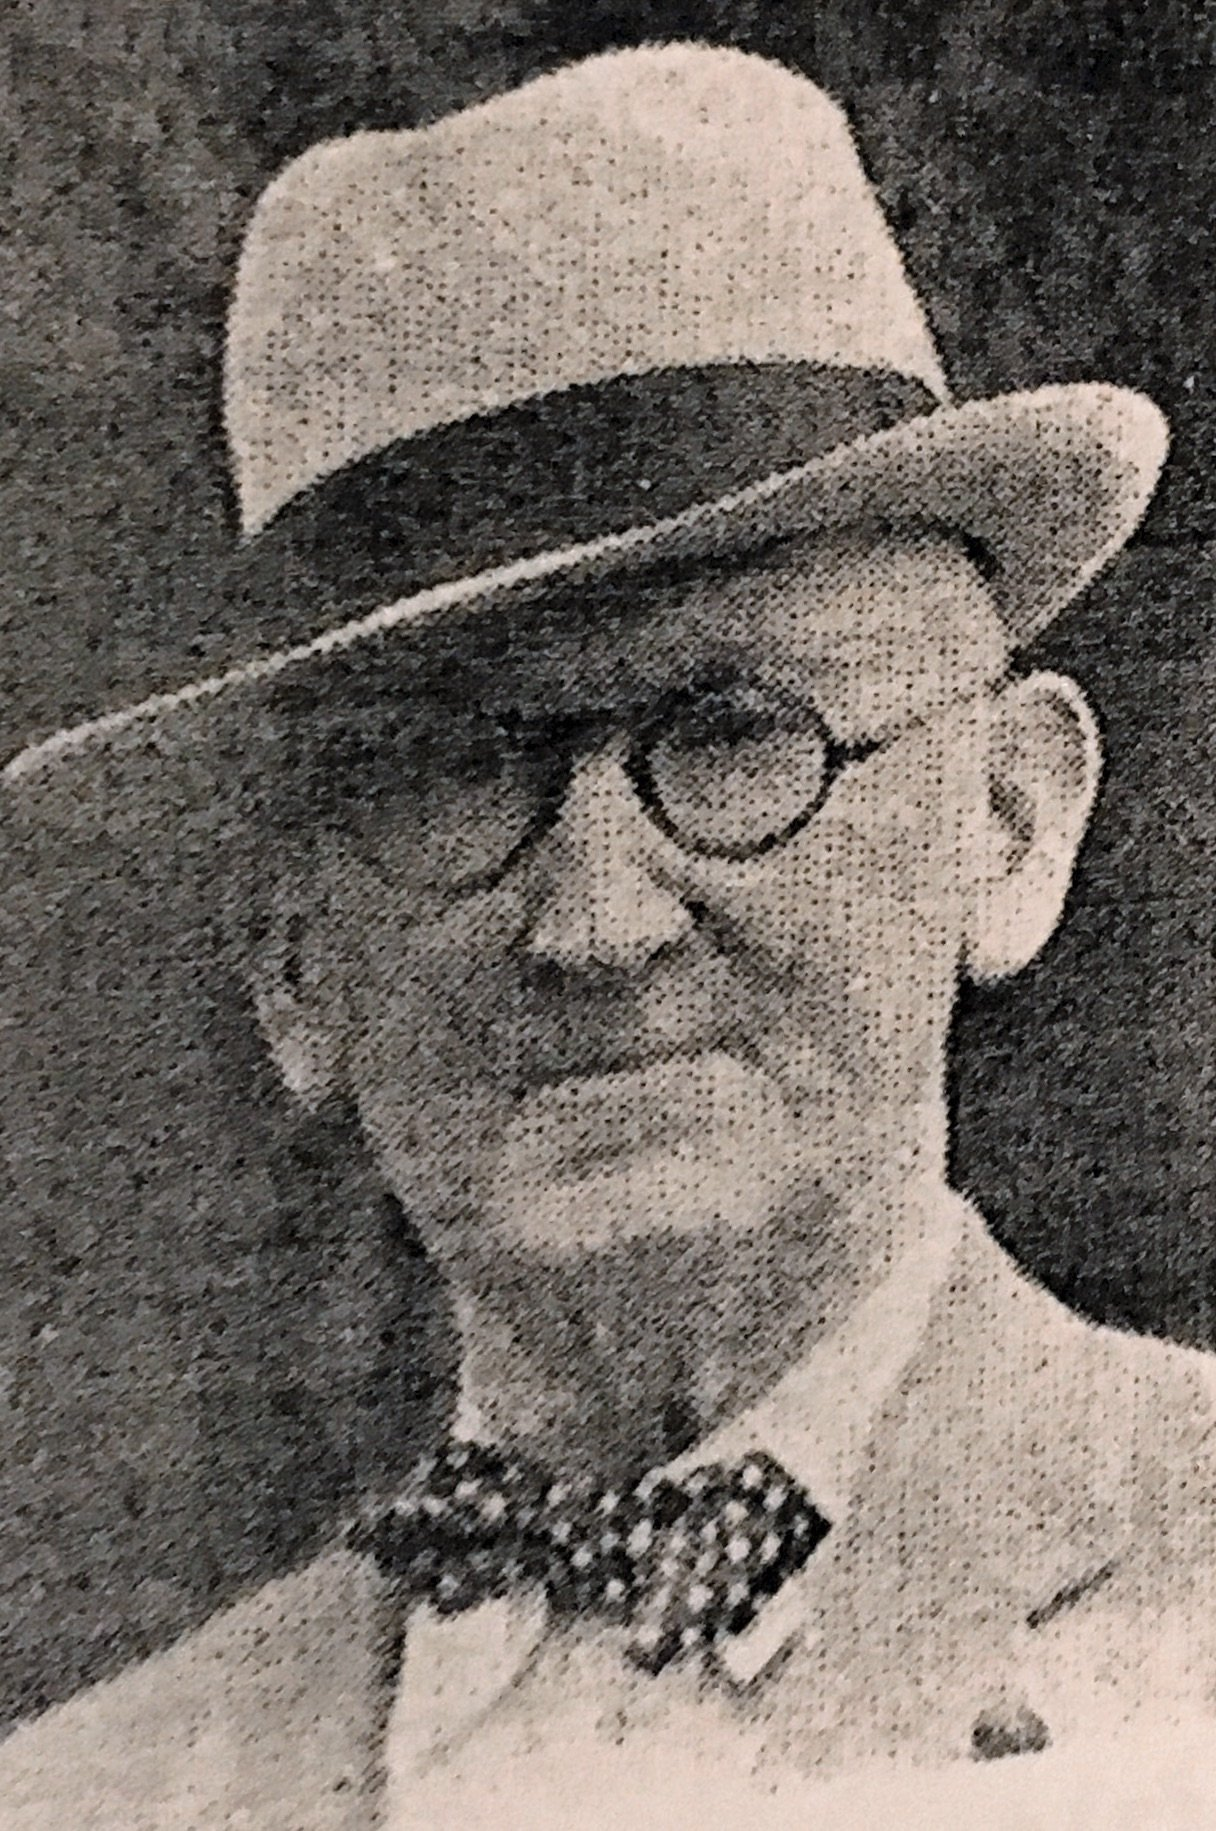 Mayor W. W. Foster from Masonic Sketches, 1939.